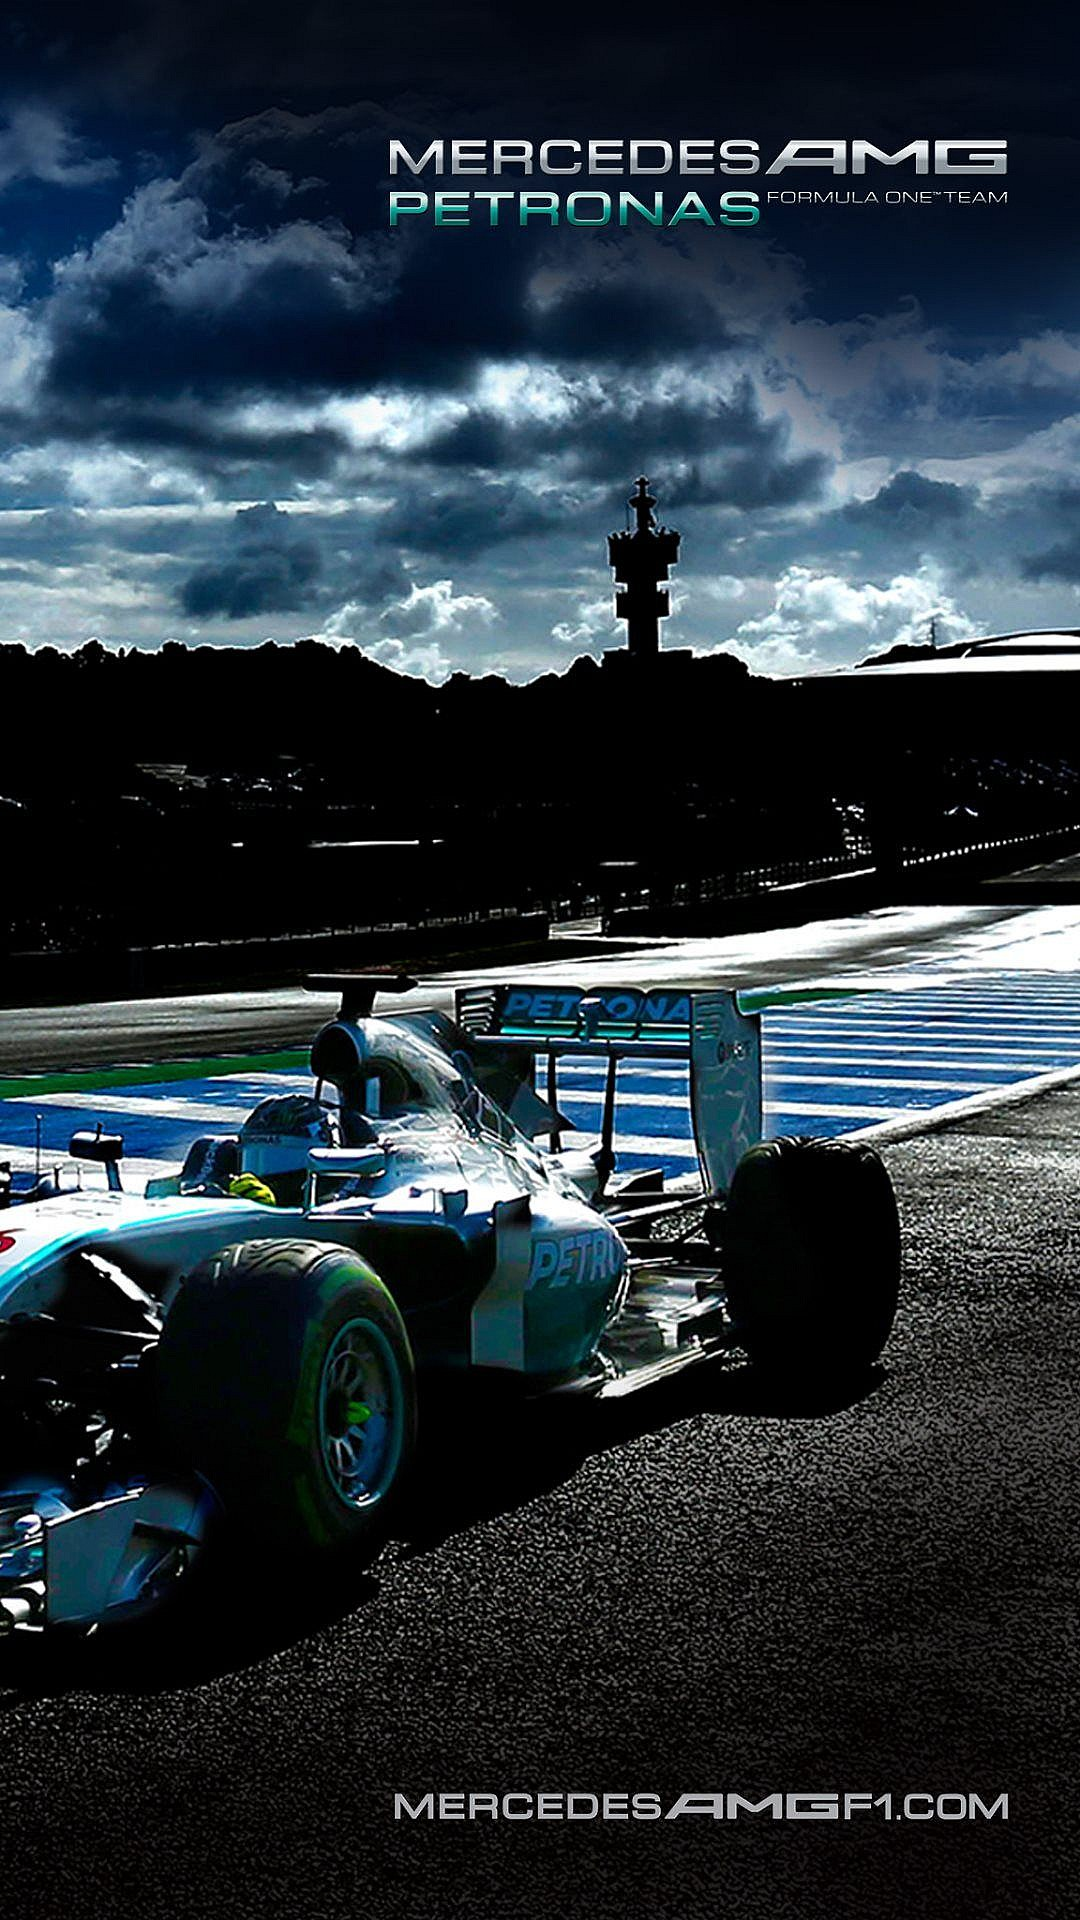 Mercedes F1 Wallpaper Posted By Christopher Tremblay Images, Photos, Reviews